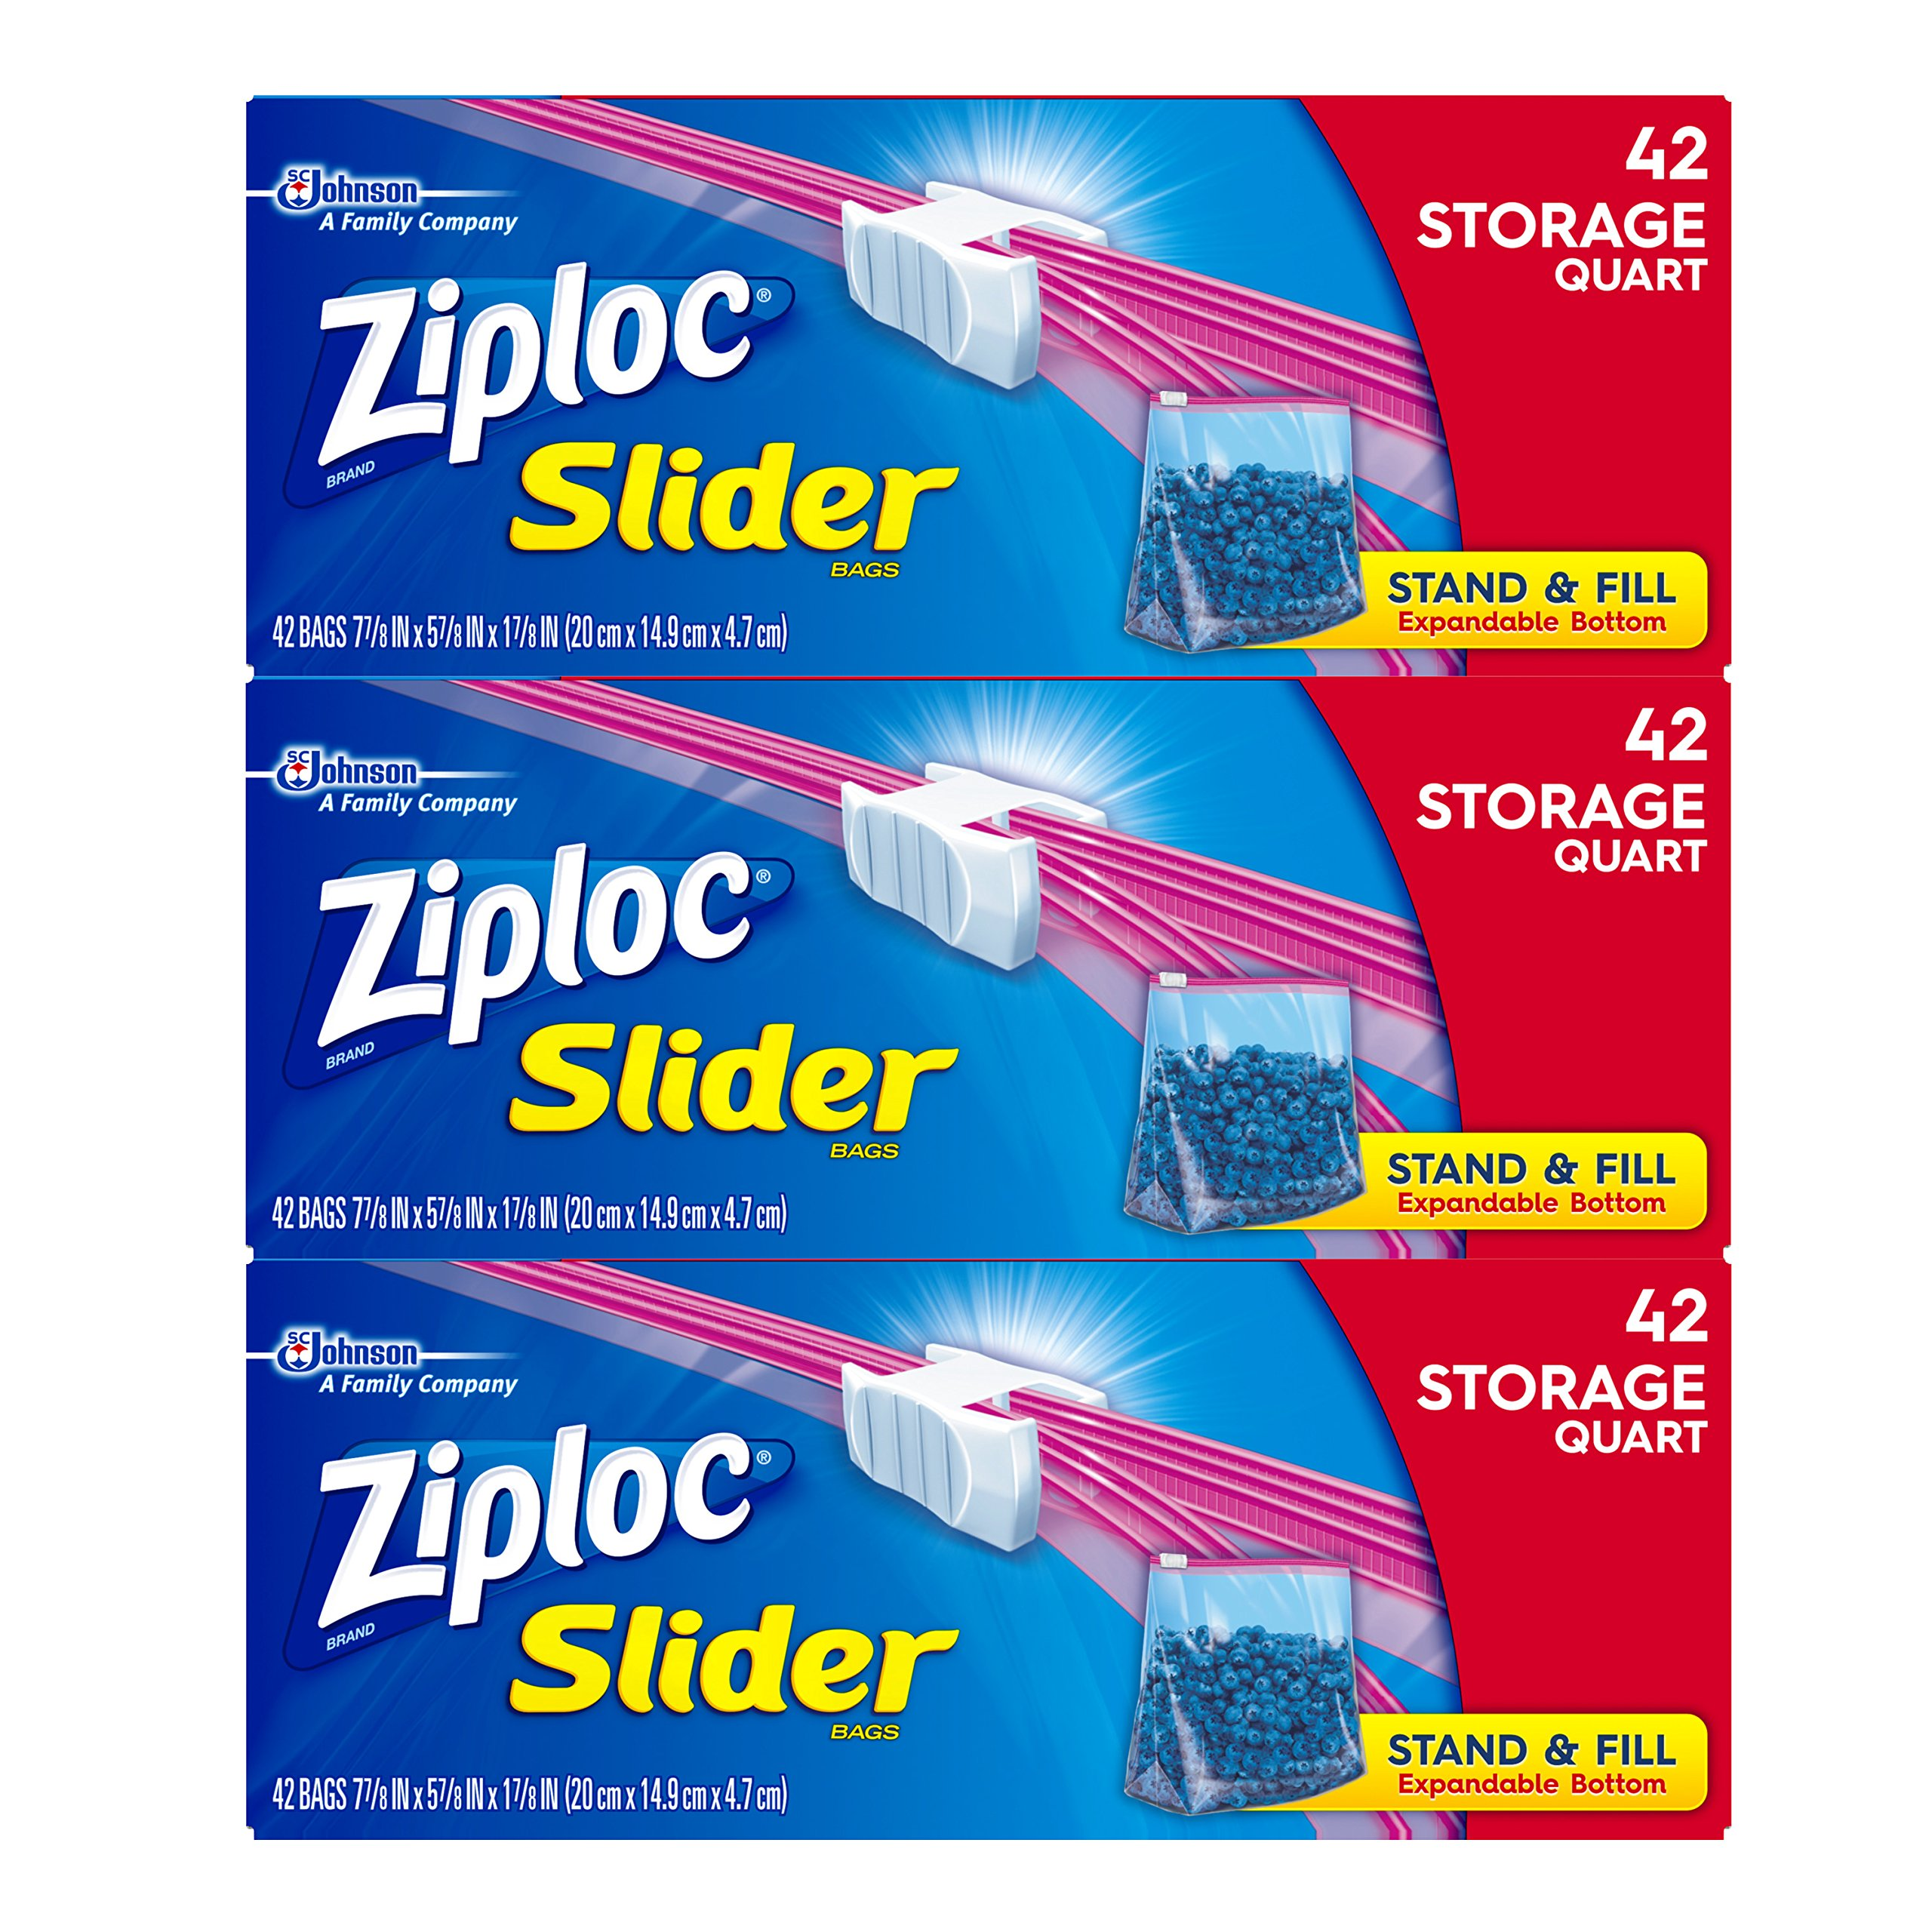 Ziploc Slider Storage Bags with New Power Shield Technology, For Food, Sandwich, Organization and More, Quart, 42 Count, Pack of 3 (126 Total Bags)